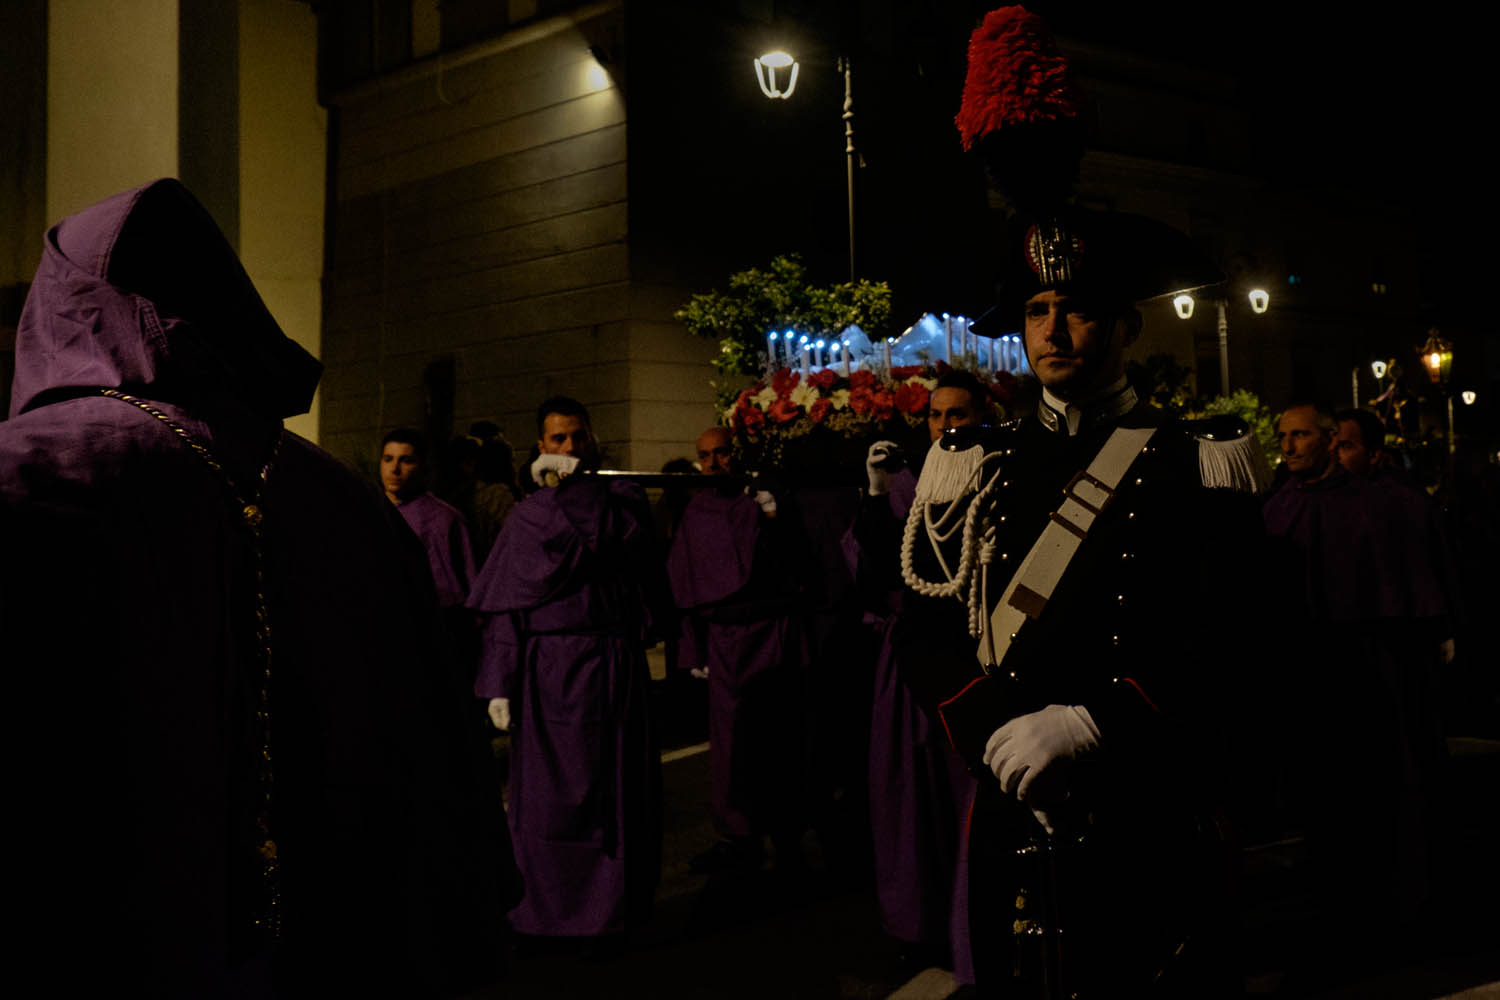 The Sorrentine Peninsula Easter Parade © Massimo Vicinanza